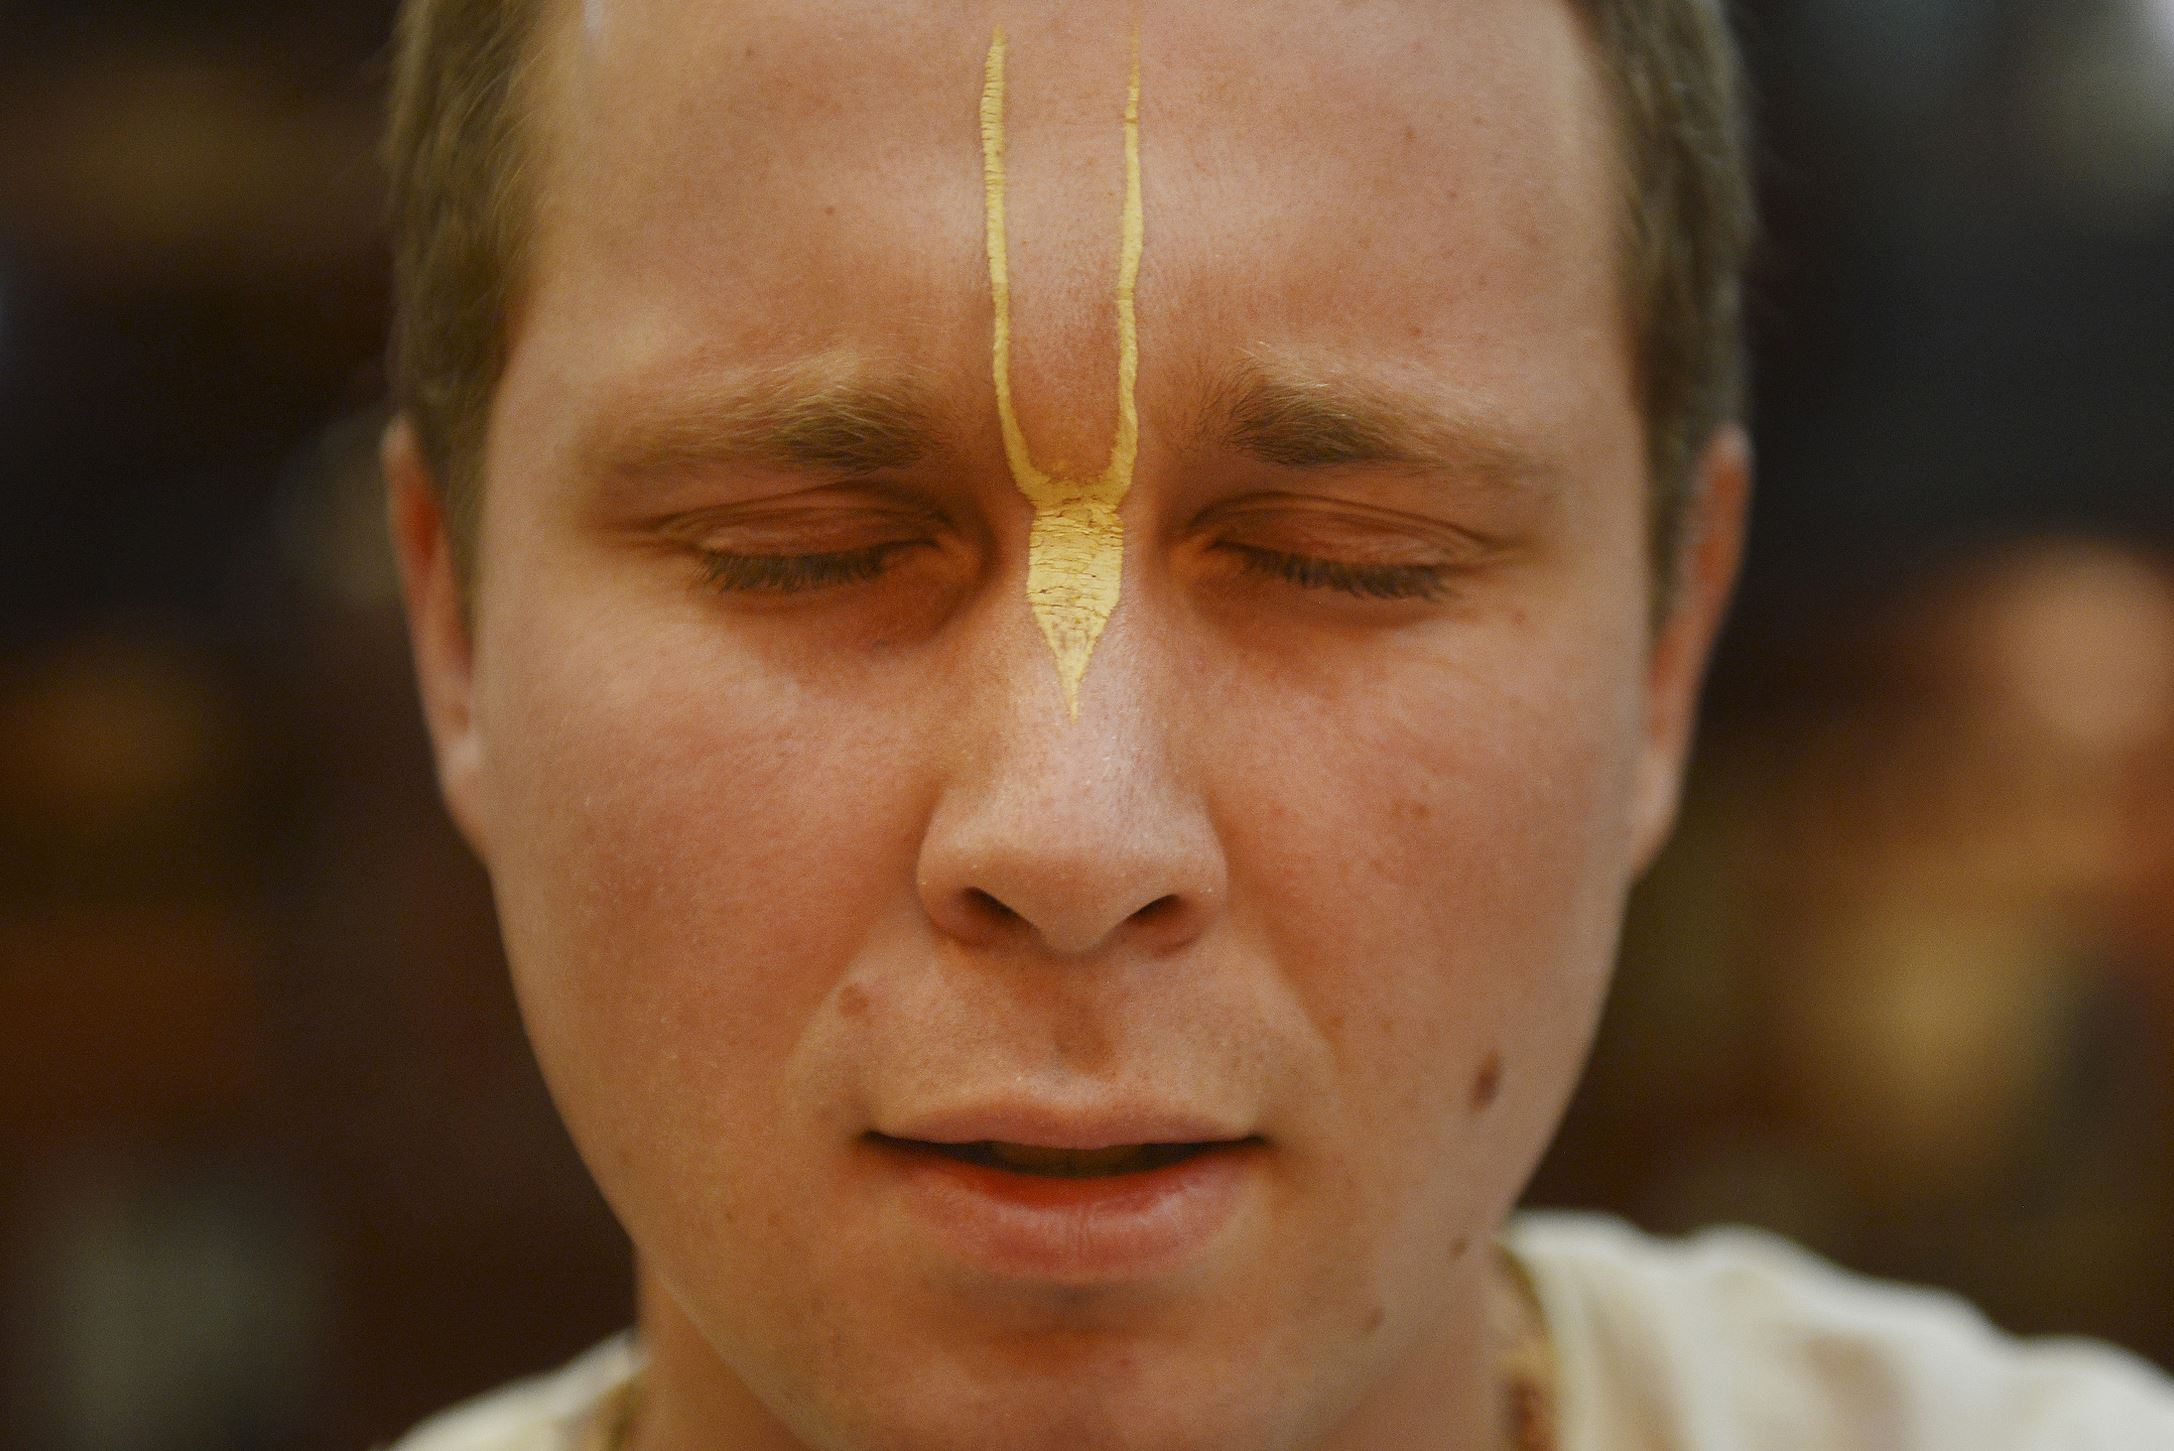 """20151210JR-NewVrindaban8-9 Pranatakaruna dasa, 25, of Wheeling, West Virginia, chants in the temple at New Vrindaban Wednesday, Dec. 9. Mr. Dasa said there is no conflict between Hare Krishna beliefs and """"fracking"""" because the land is Krishna's. """"How can you give up something that doesn't belong to you? Intention plays a large part of it,"""" he said."""